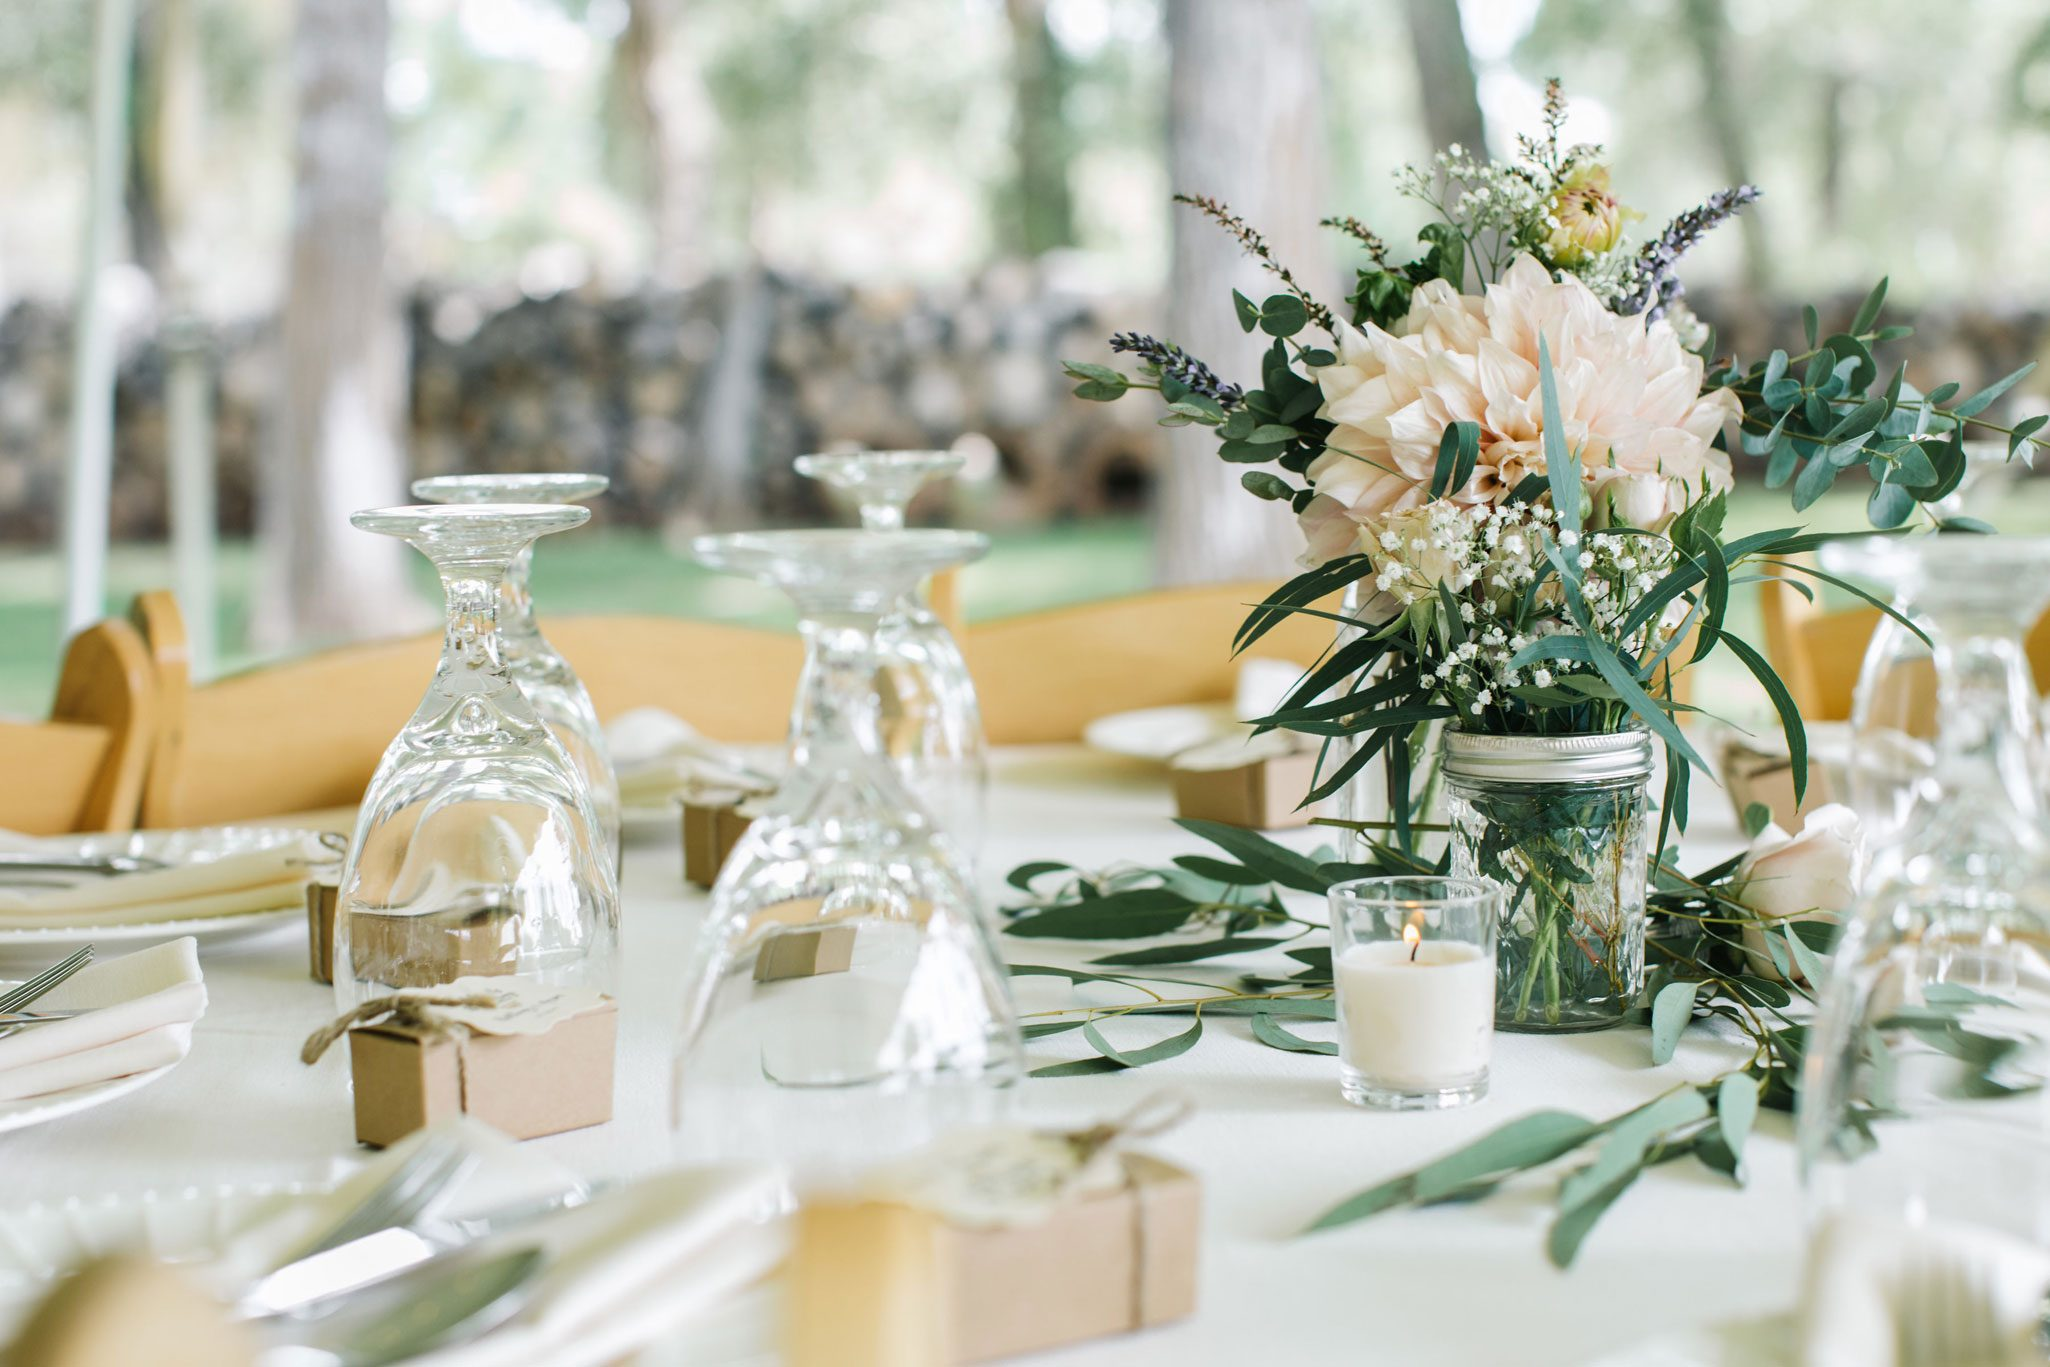 Tablescape | A Romantic Garden Wedding in Durango, Colorado